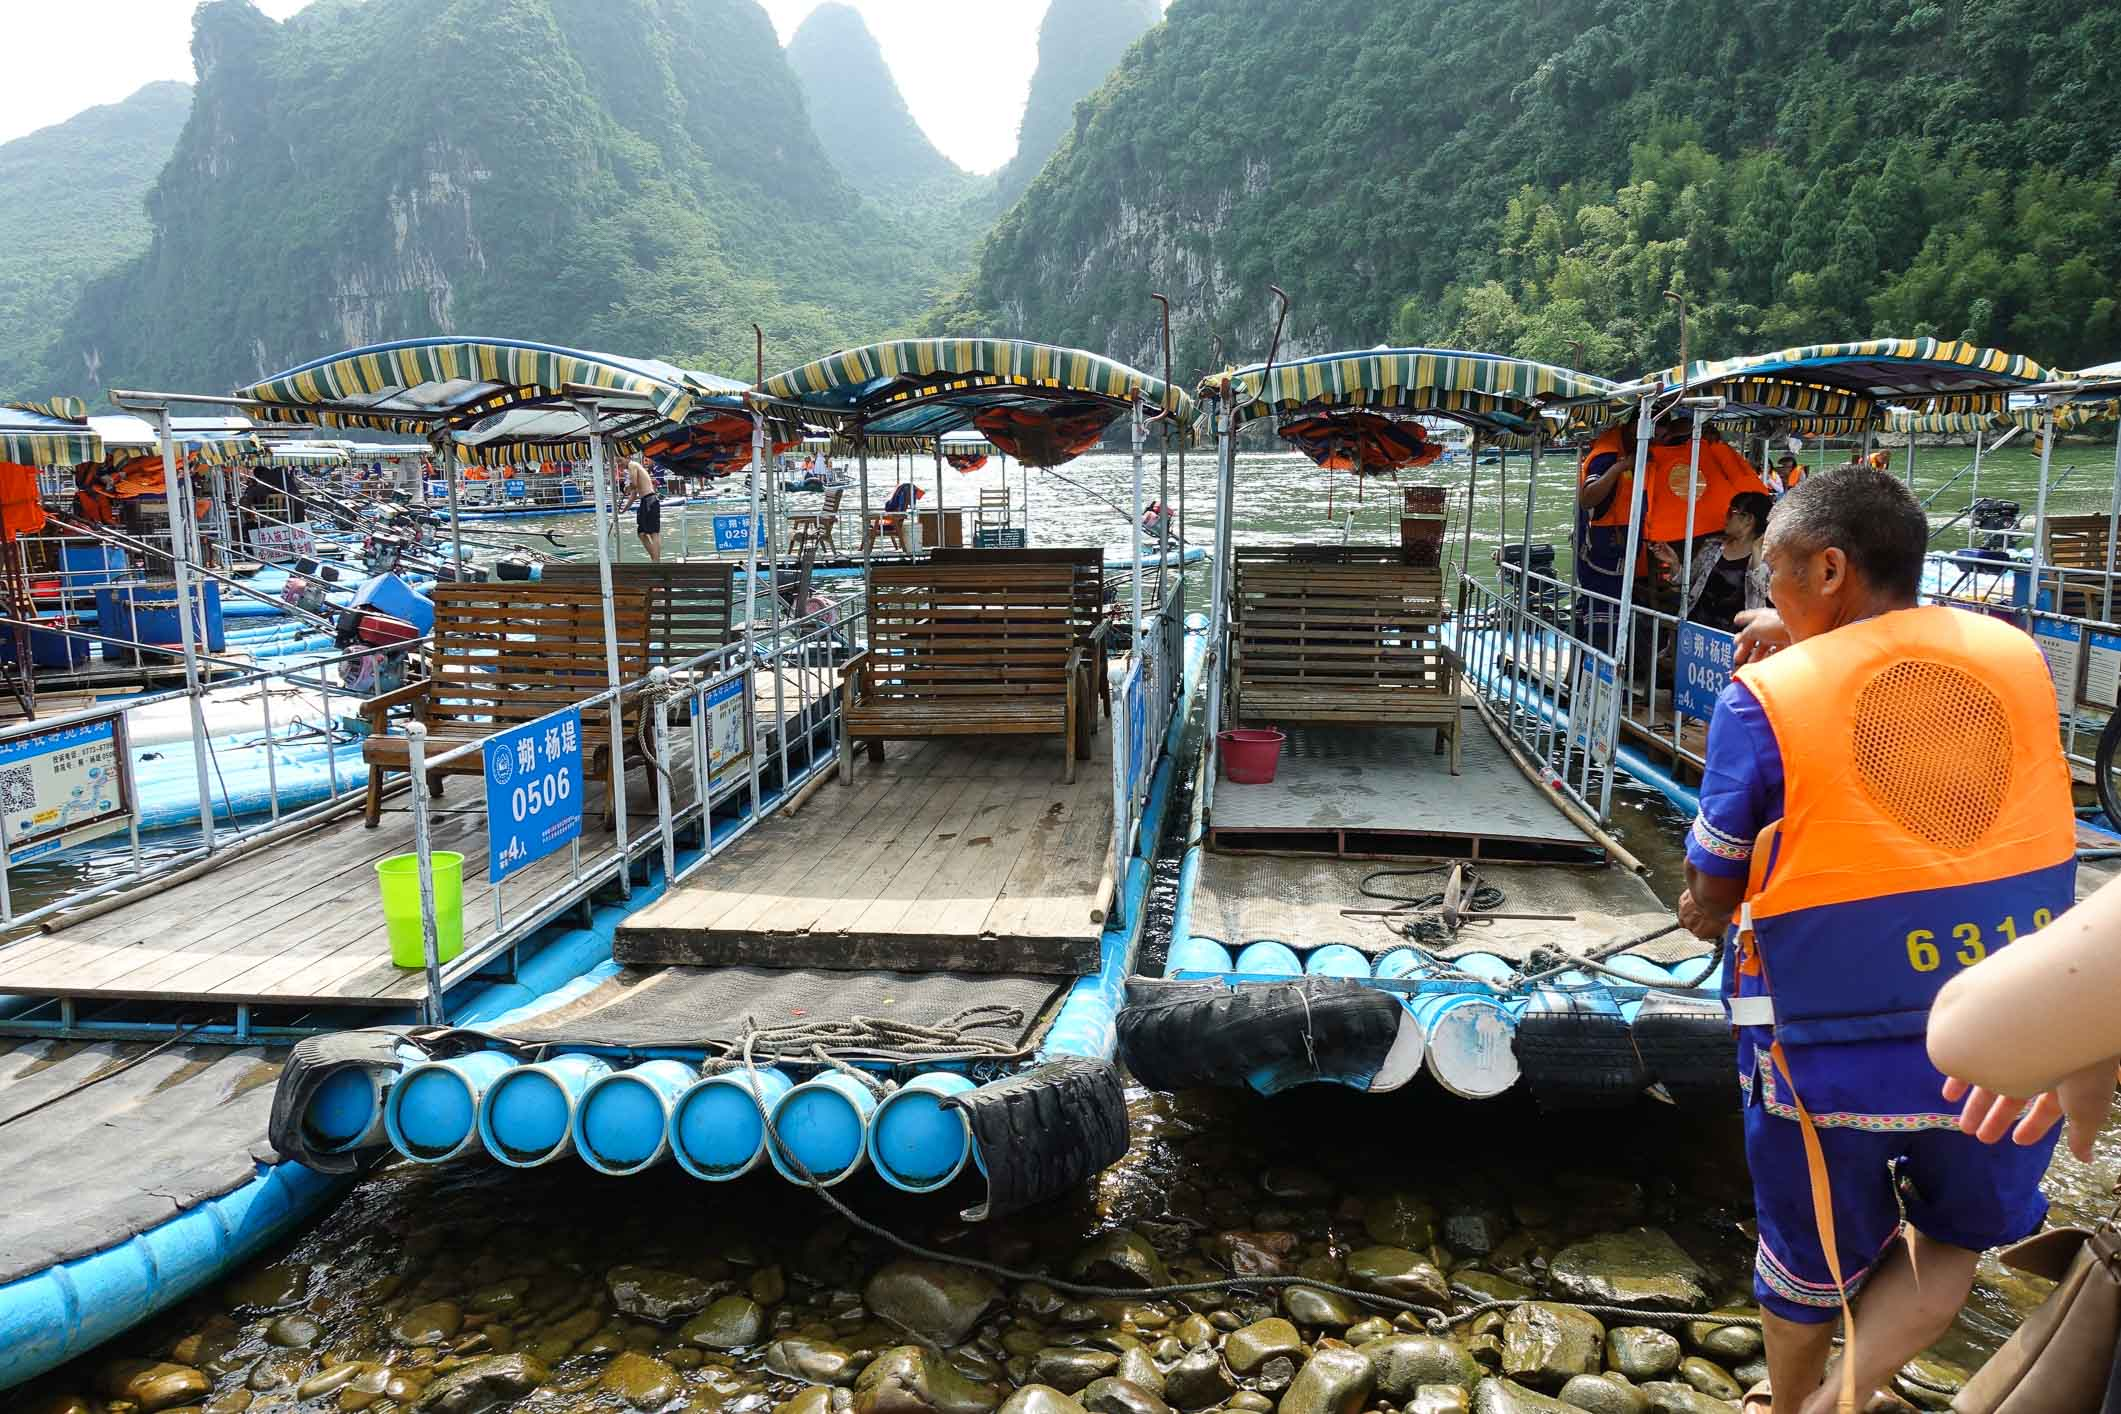 Bamboo boats on the Li river